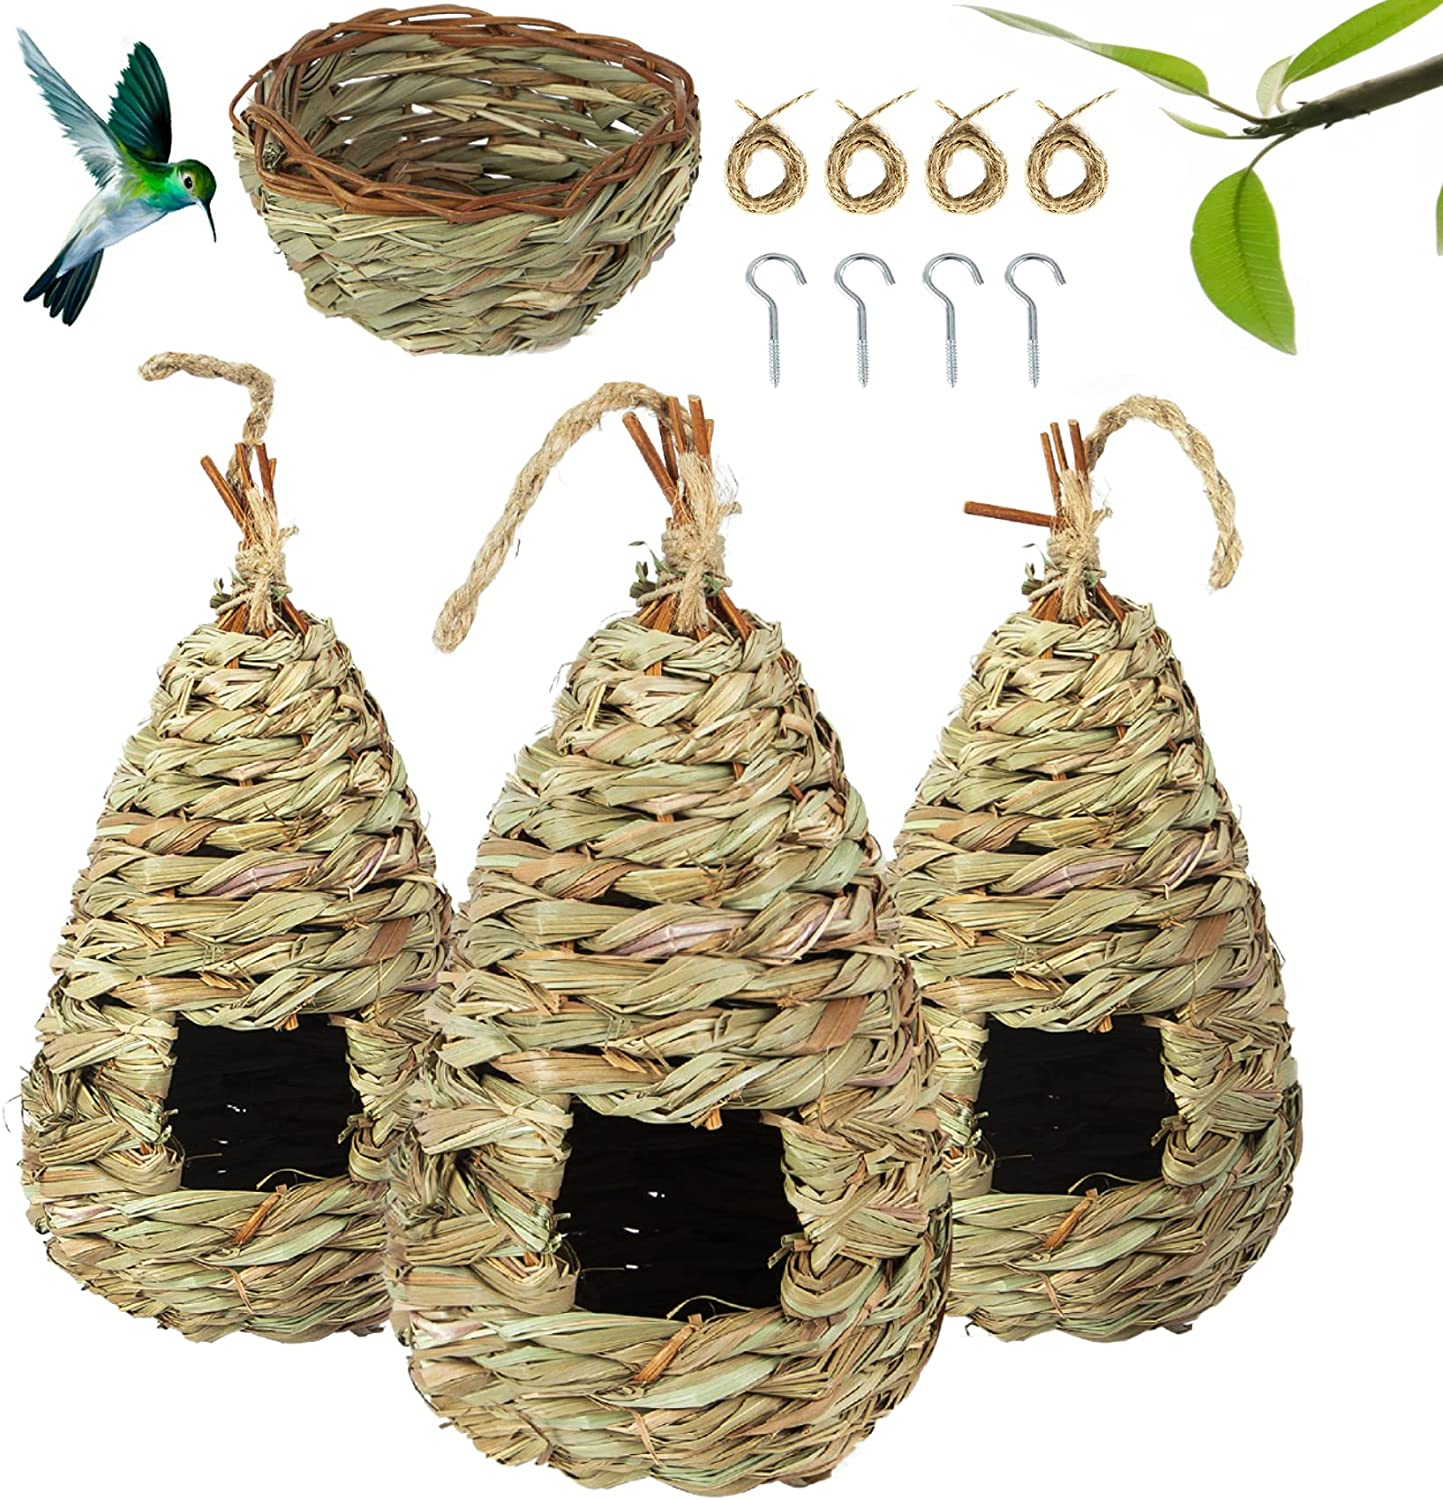 Ouddy Set of 4 Hummingbird House for Outside Hanging, Natural Hand Woven Bird House Hummingbird Nest for Outside Small Nature Grass Hanging Bird Hut for Garden Window Outdoor Home Decoration